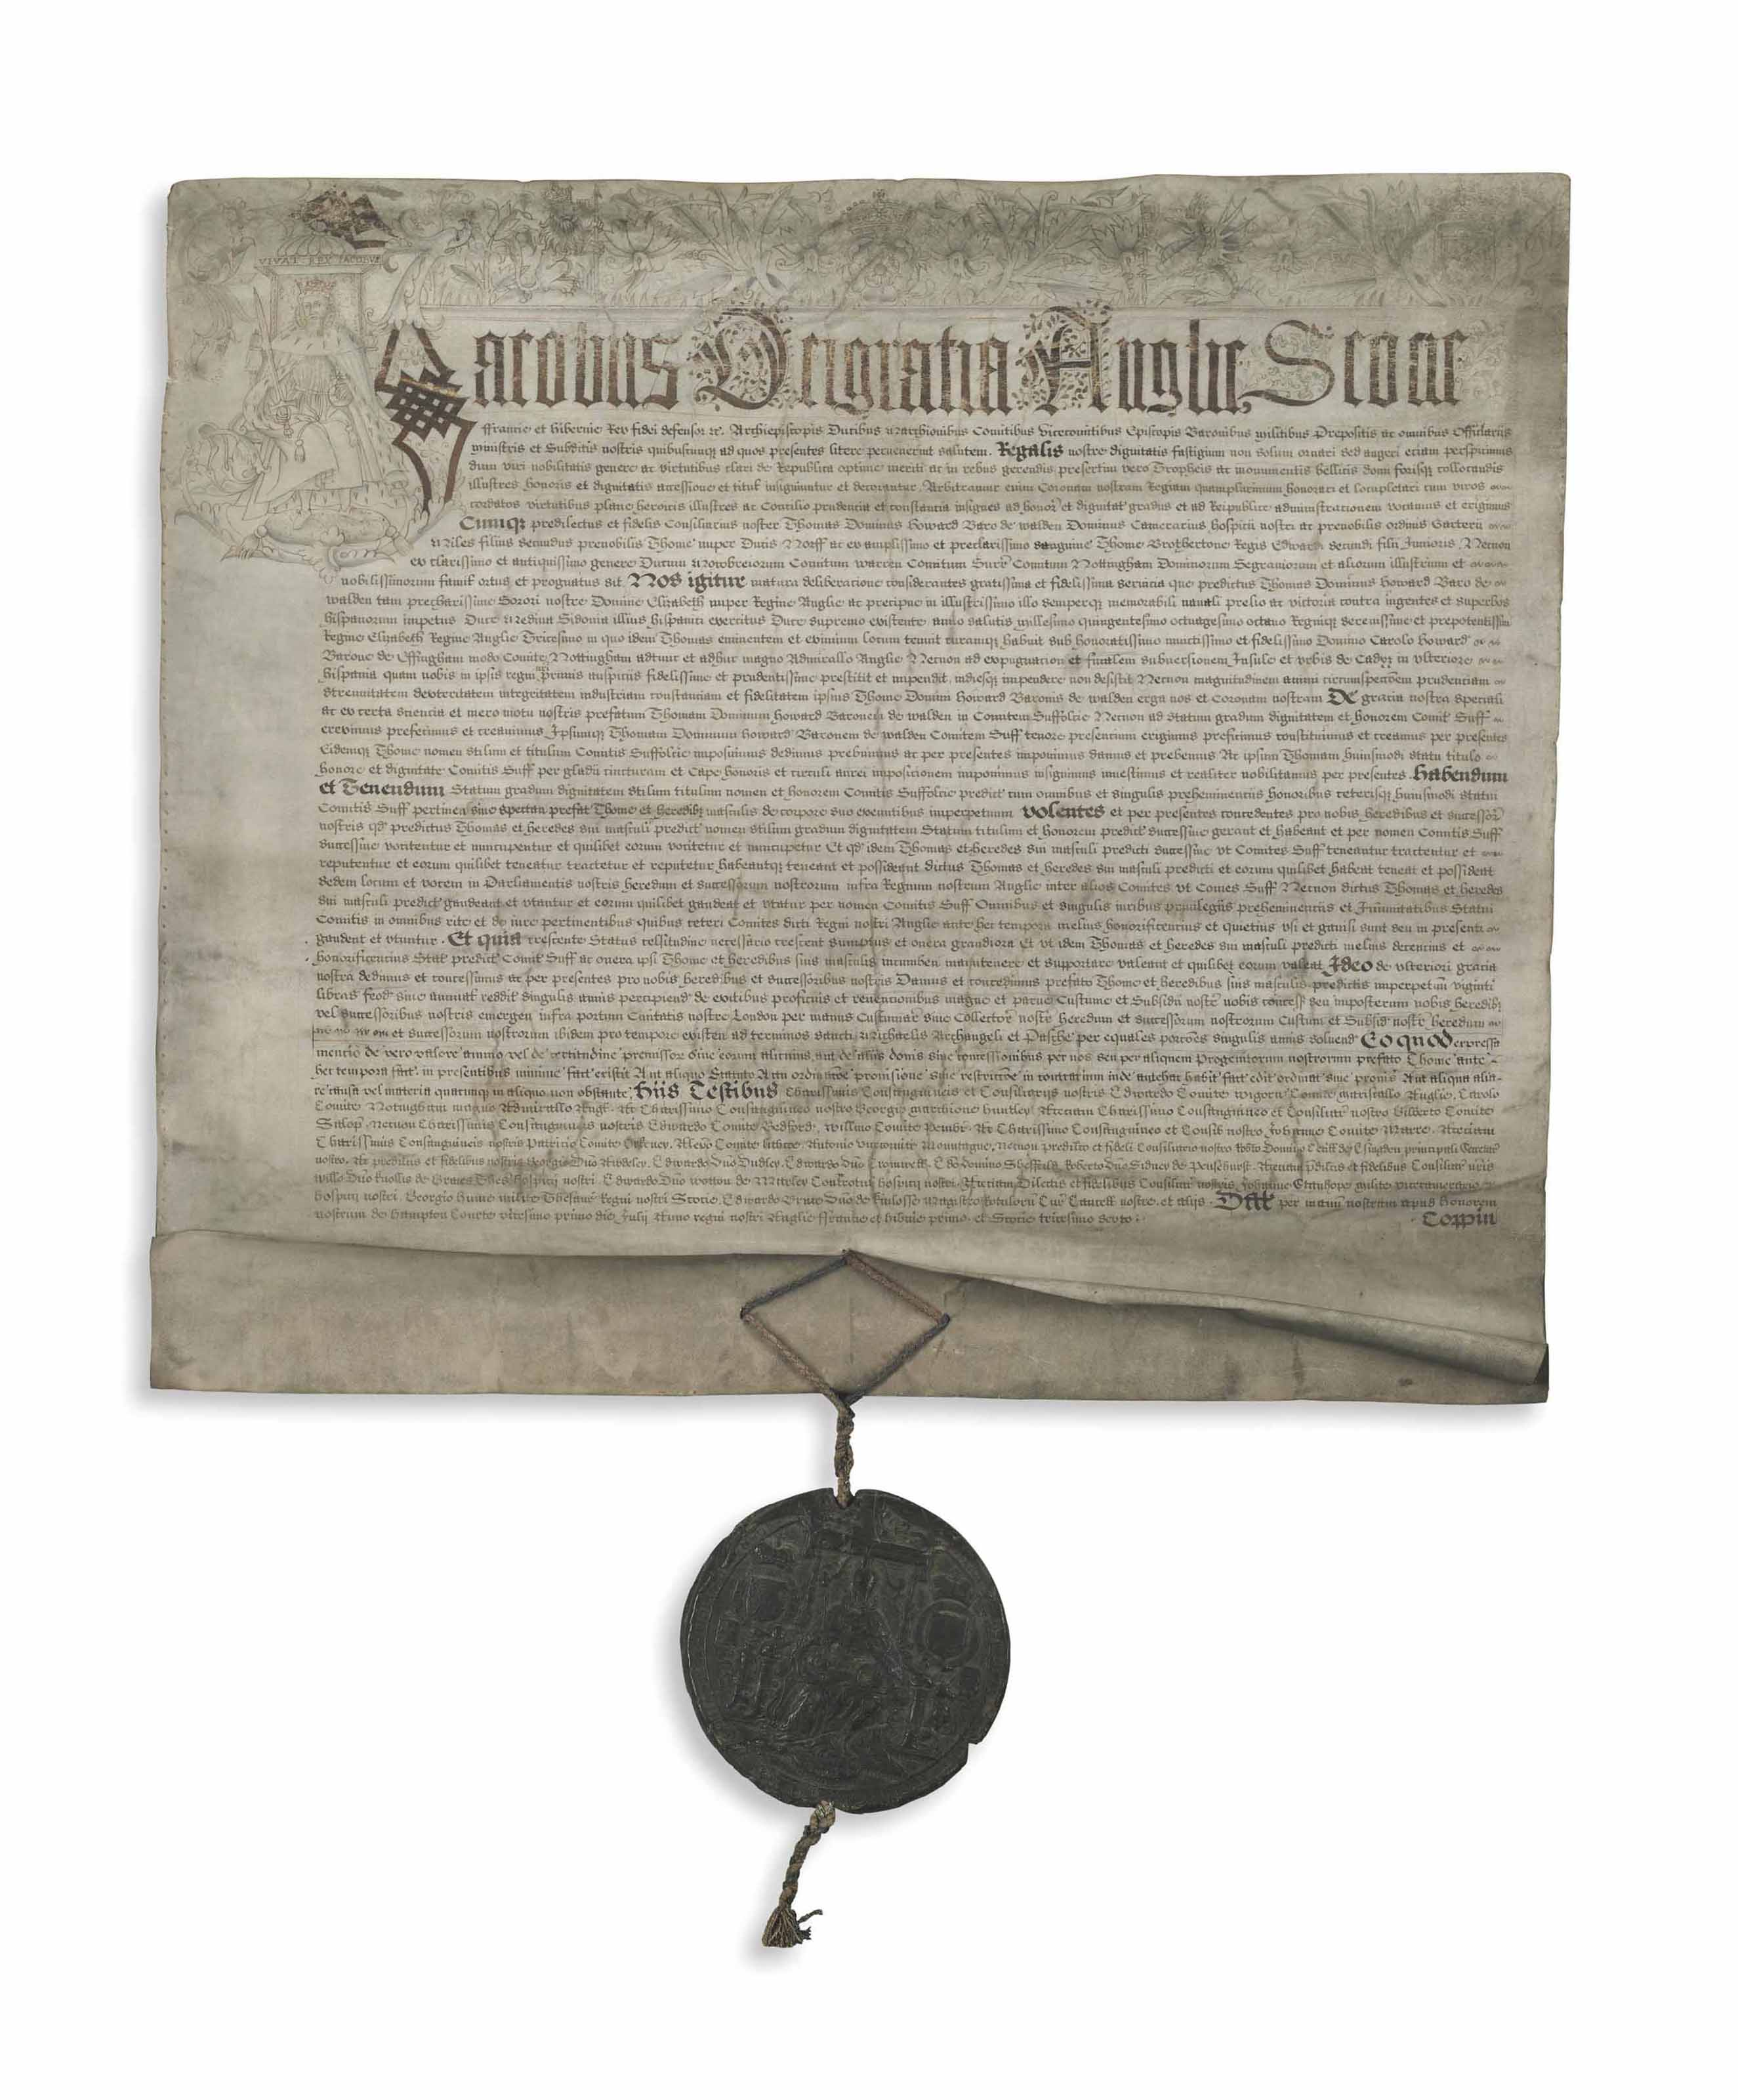 JAMES VI and I (1566-1625), King of Scotland, England and Ireland. Letters patent WITH INITIAL LETTER PORTRAIT, Hampton Court, 21 July 1603.